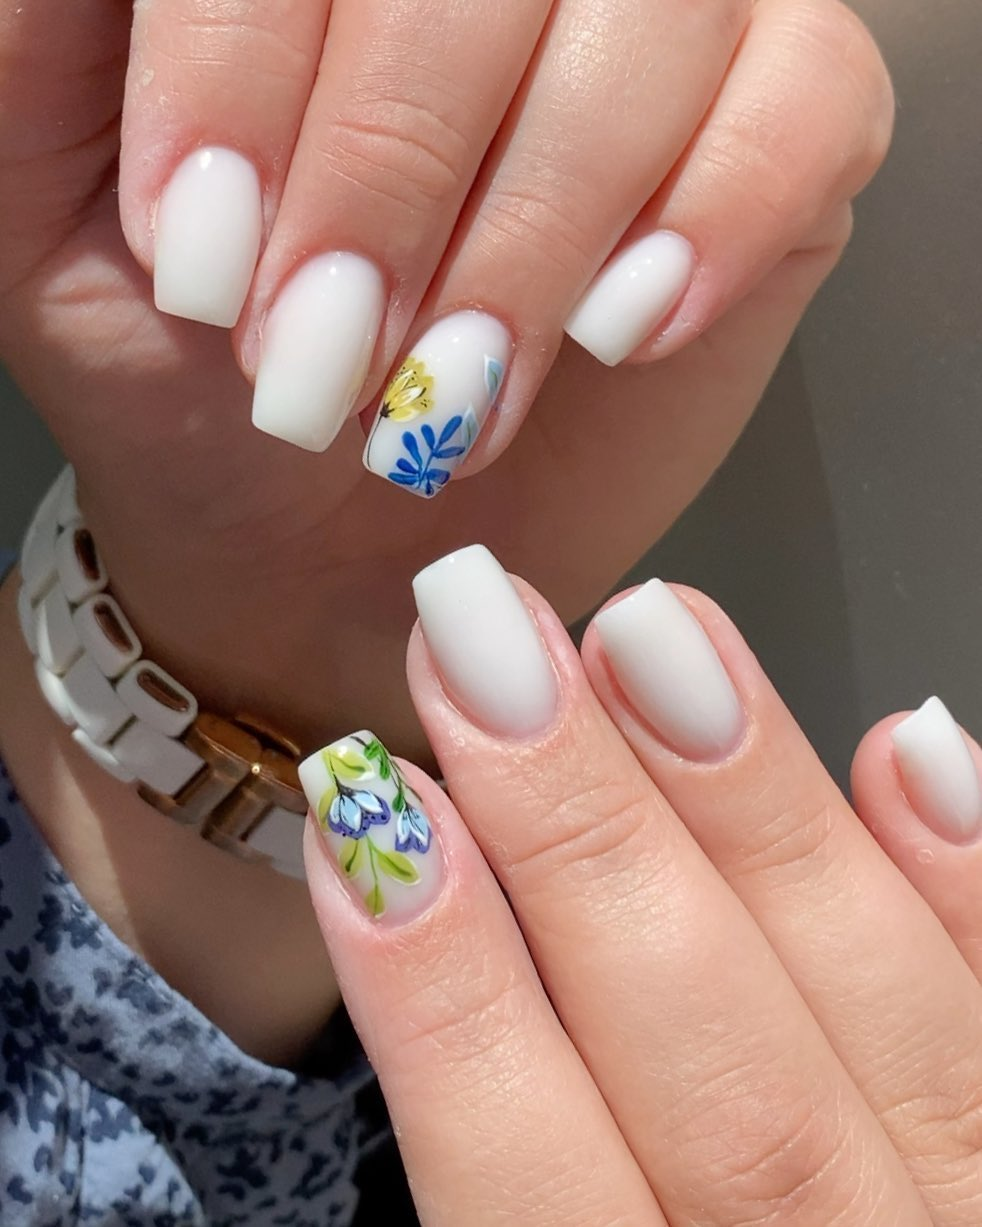 Ice nails with Flowers White Nail Art Designs